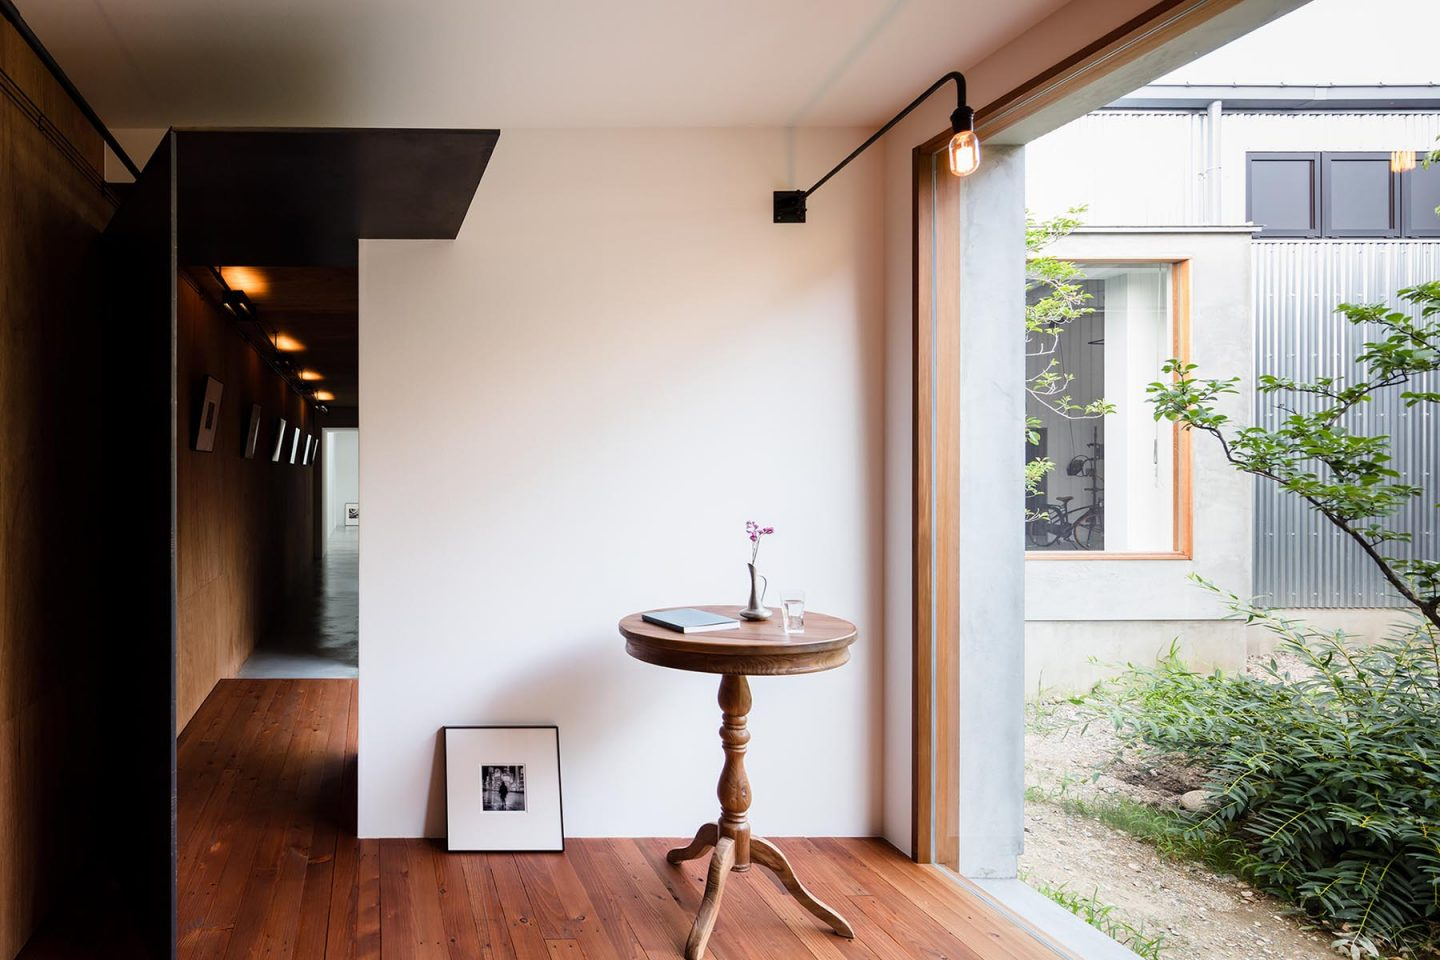 iGNANT_Architecture_House_For_A_Photographer_FORM_Kouichi_Kimura_Architects_19